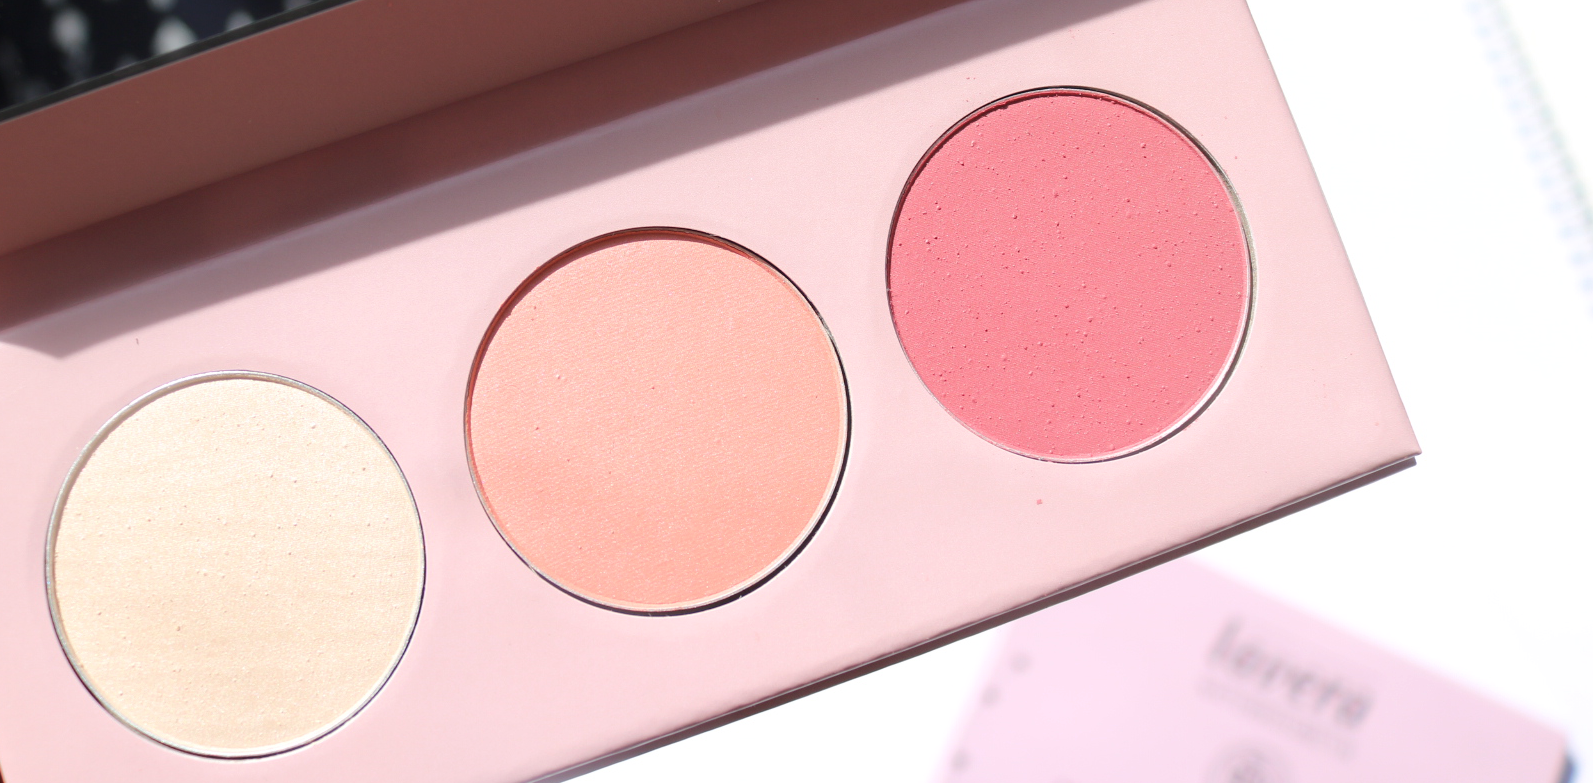 Lavera Limited Edition Natural Pastels Mineral Blush Palette in Coral Bloom review swatches